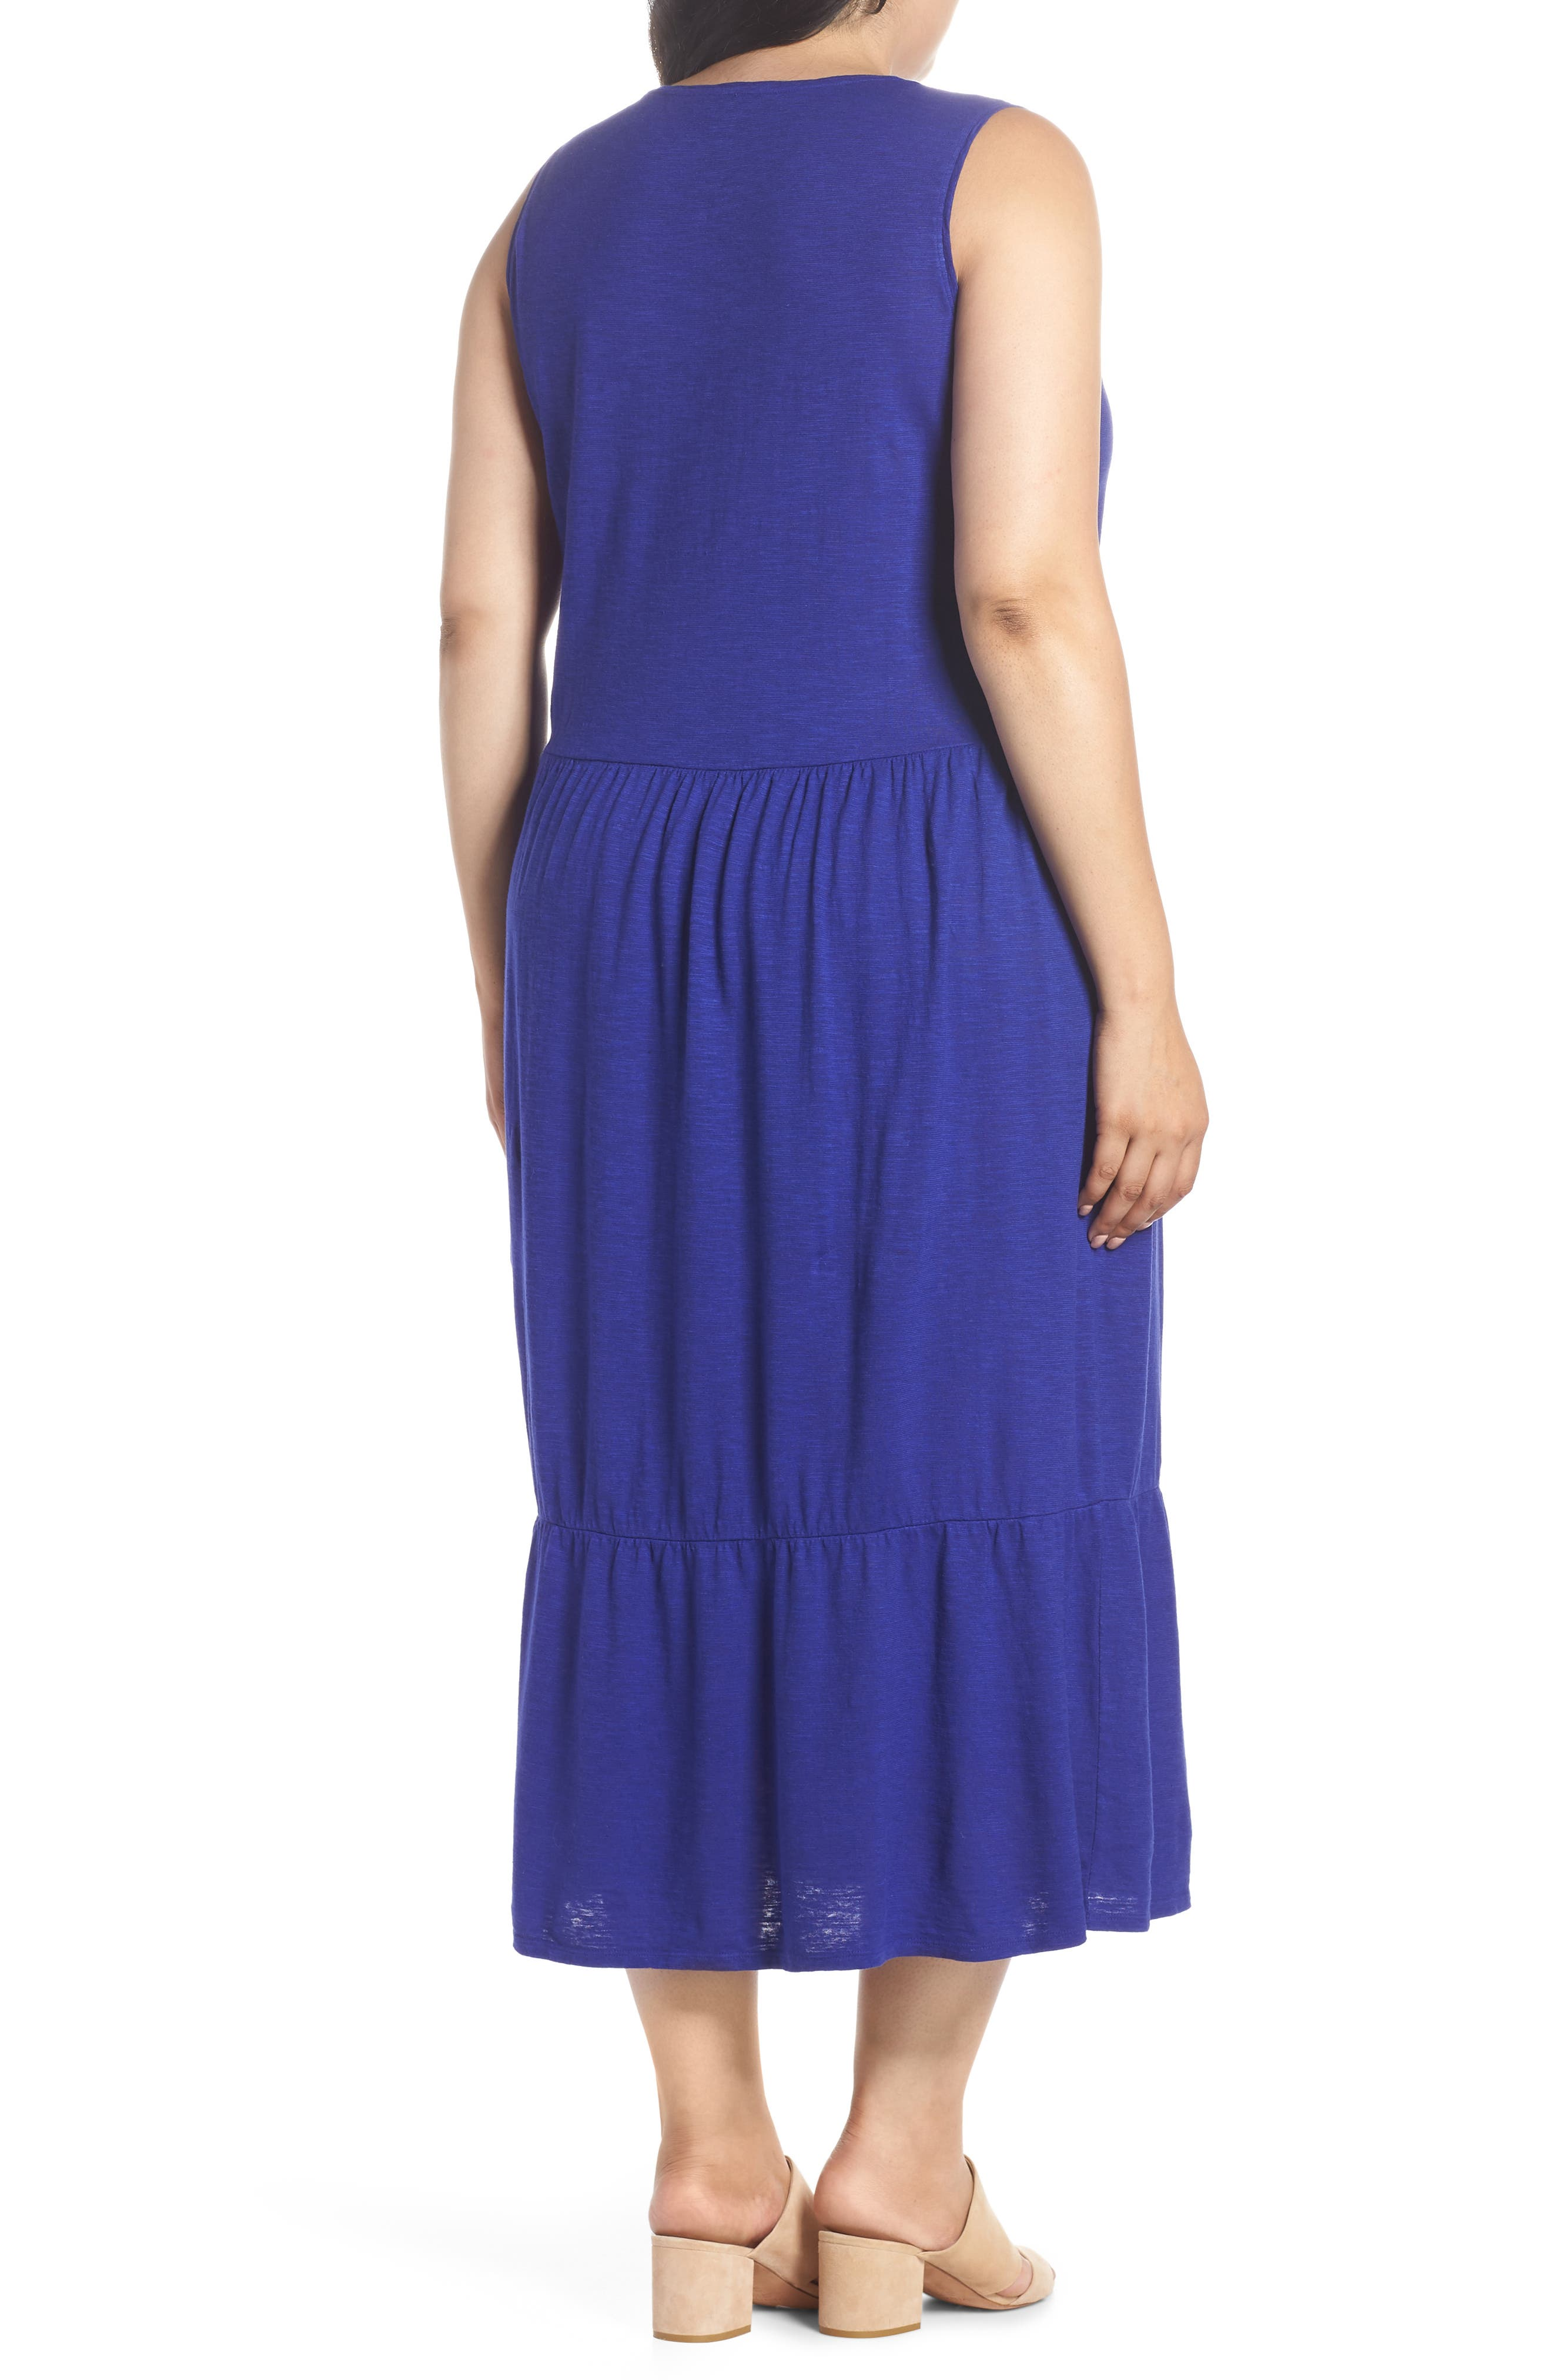 Scooped Neck Hemp & Cotton Midi Dress,                             Alternate thumbnail 2, color,                             BLUE VIOLET